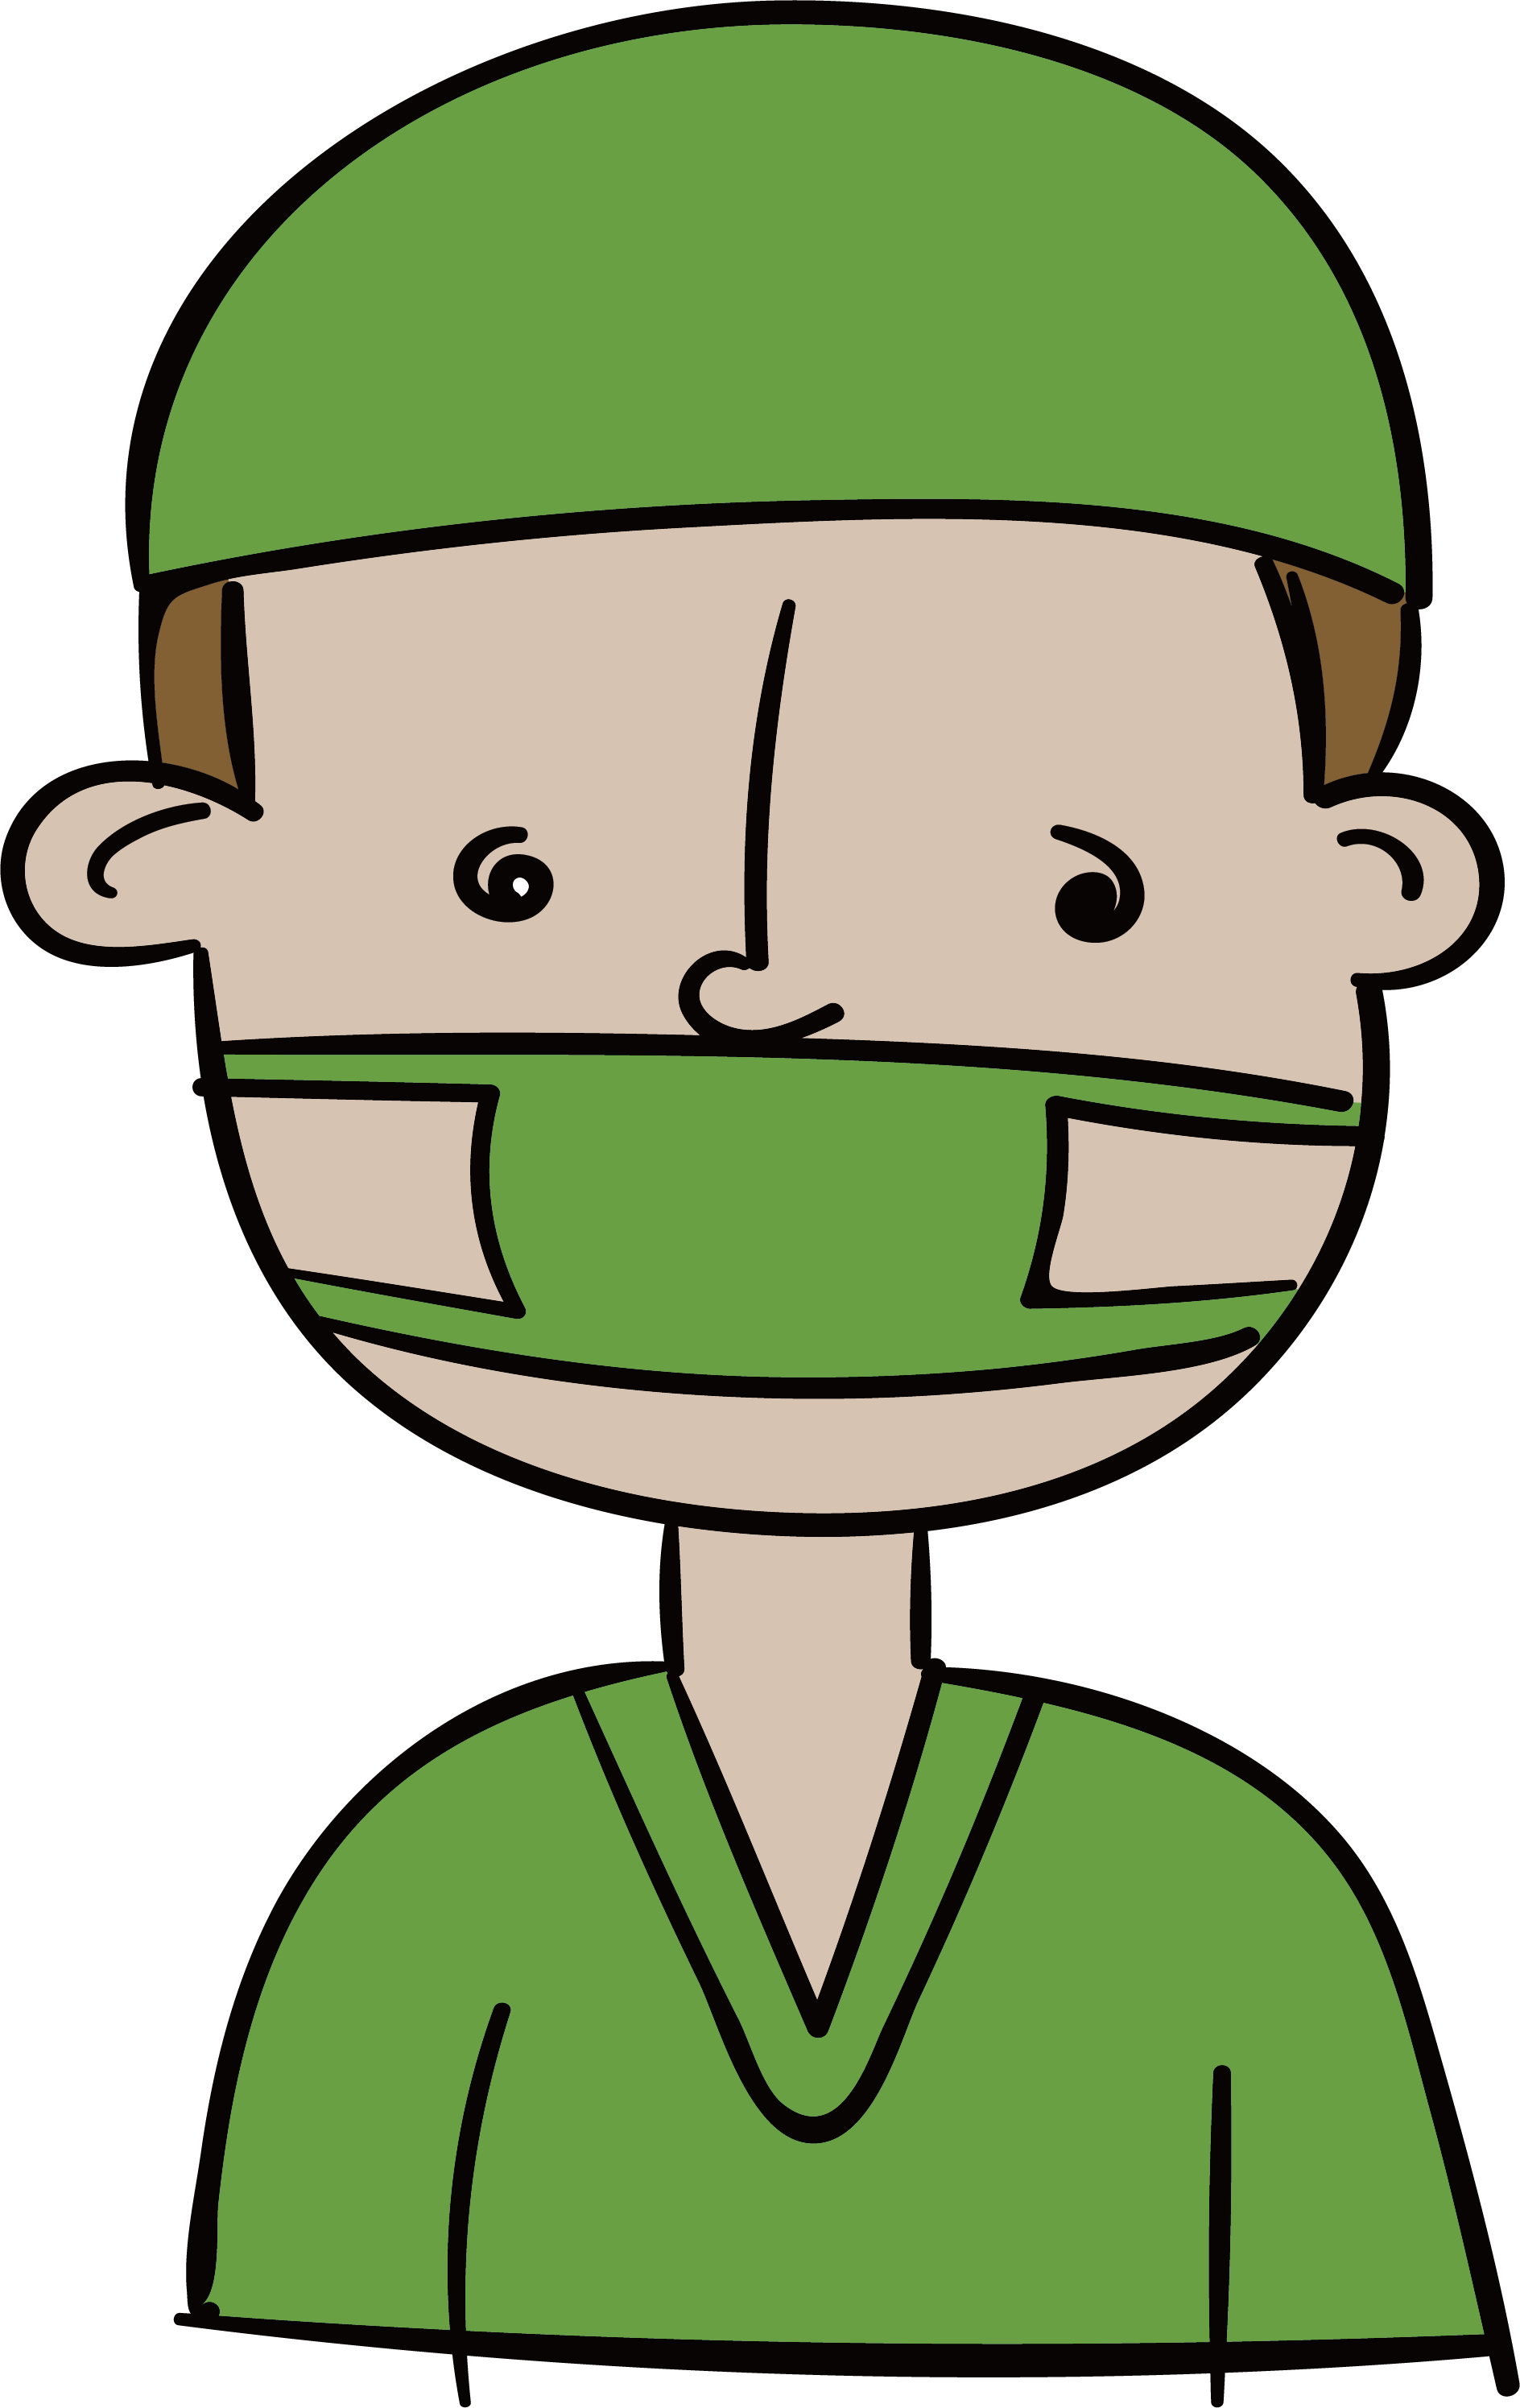 Surgeon drawing mask. Clip art a doctor